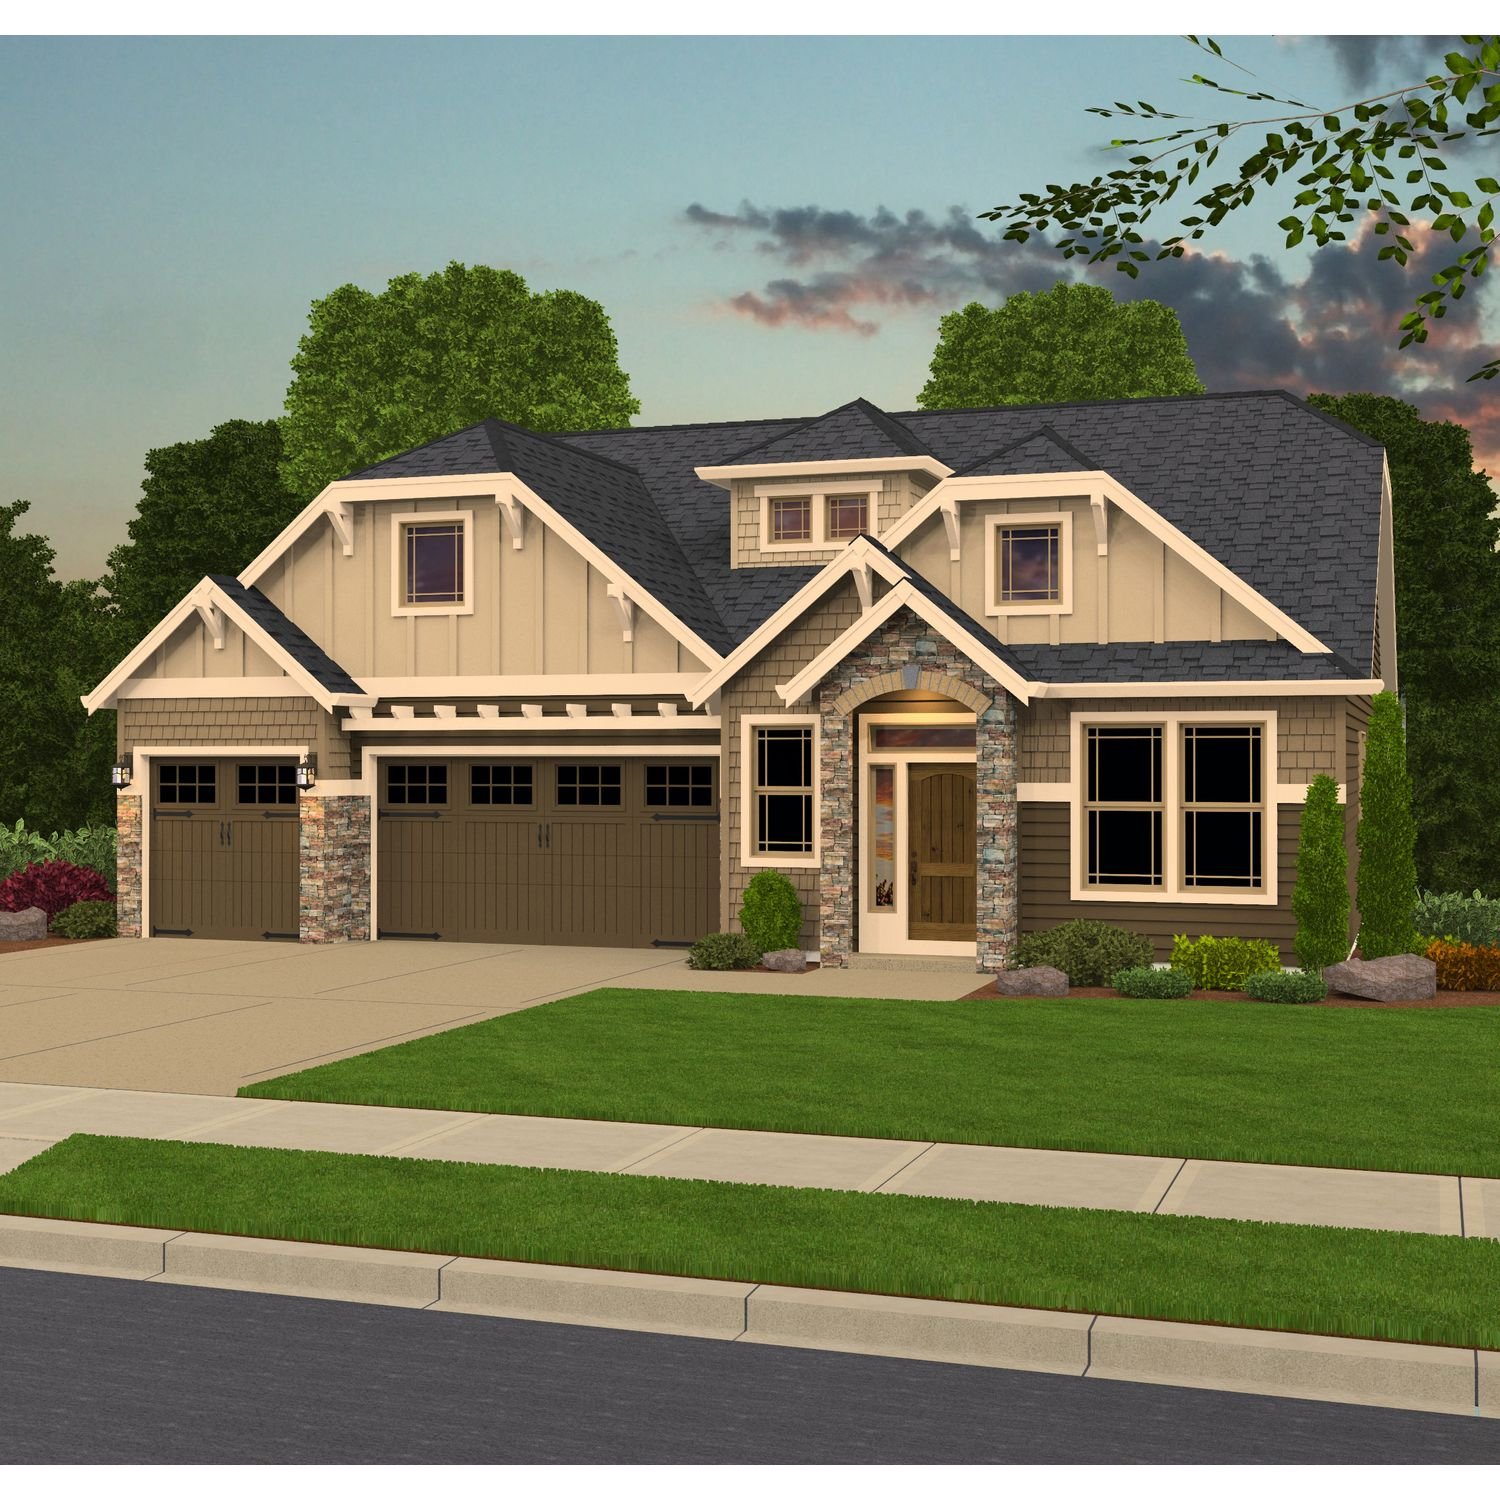 Glenwood pointe new homes in vancouver wa by pacific lifestyle for Home builders vancouver wa